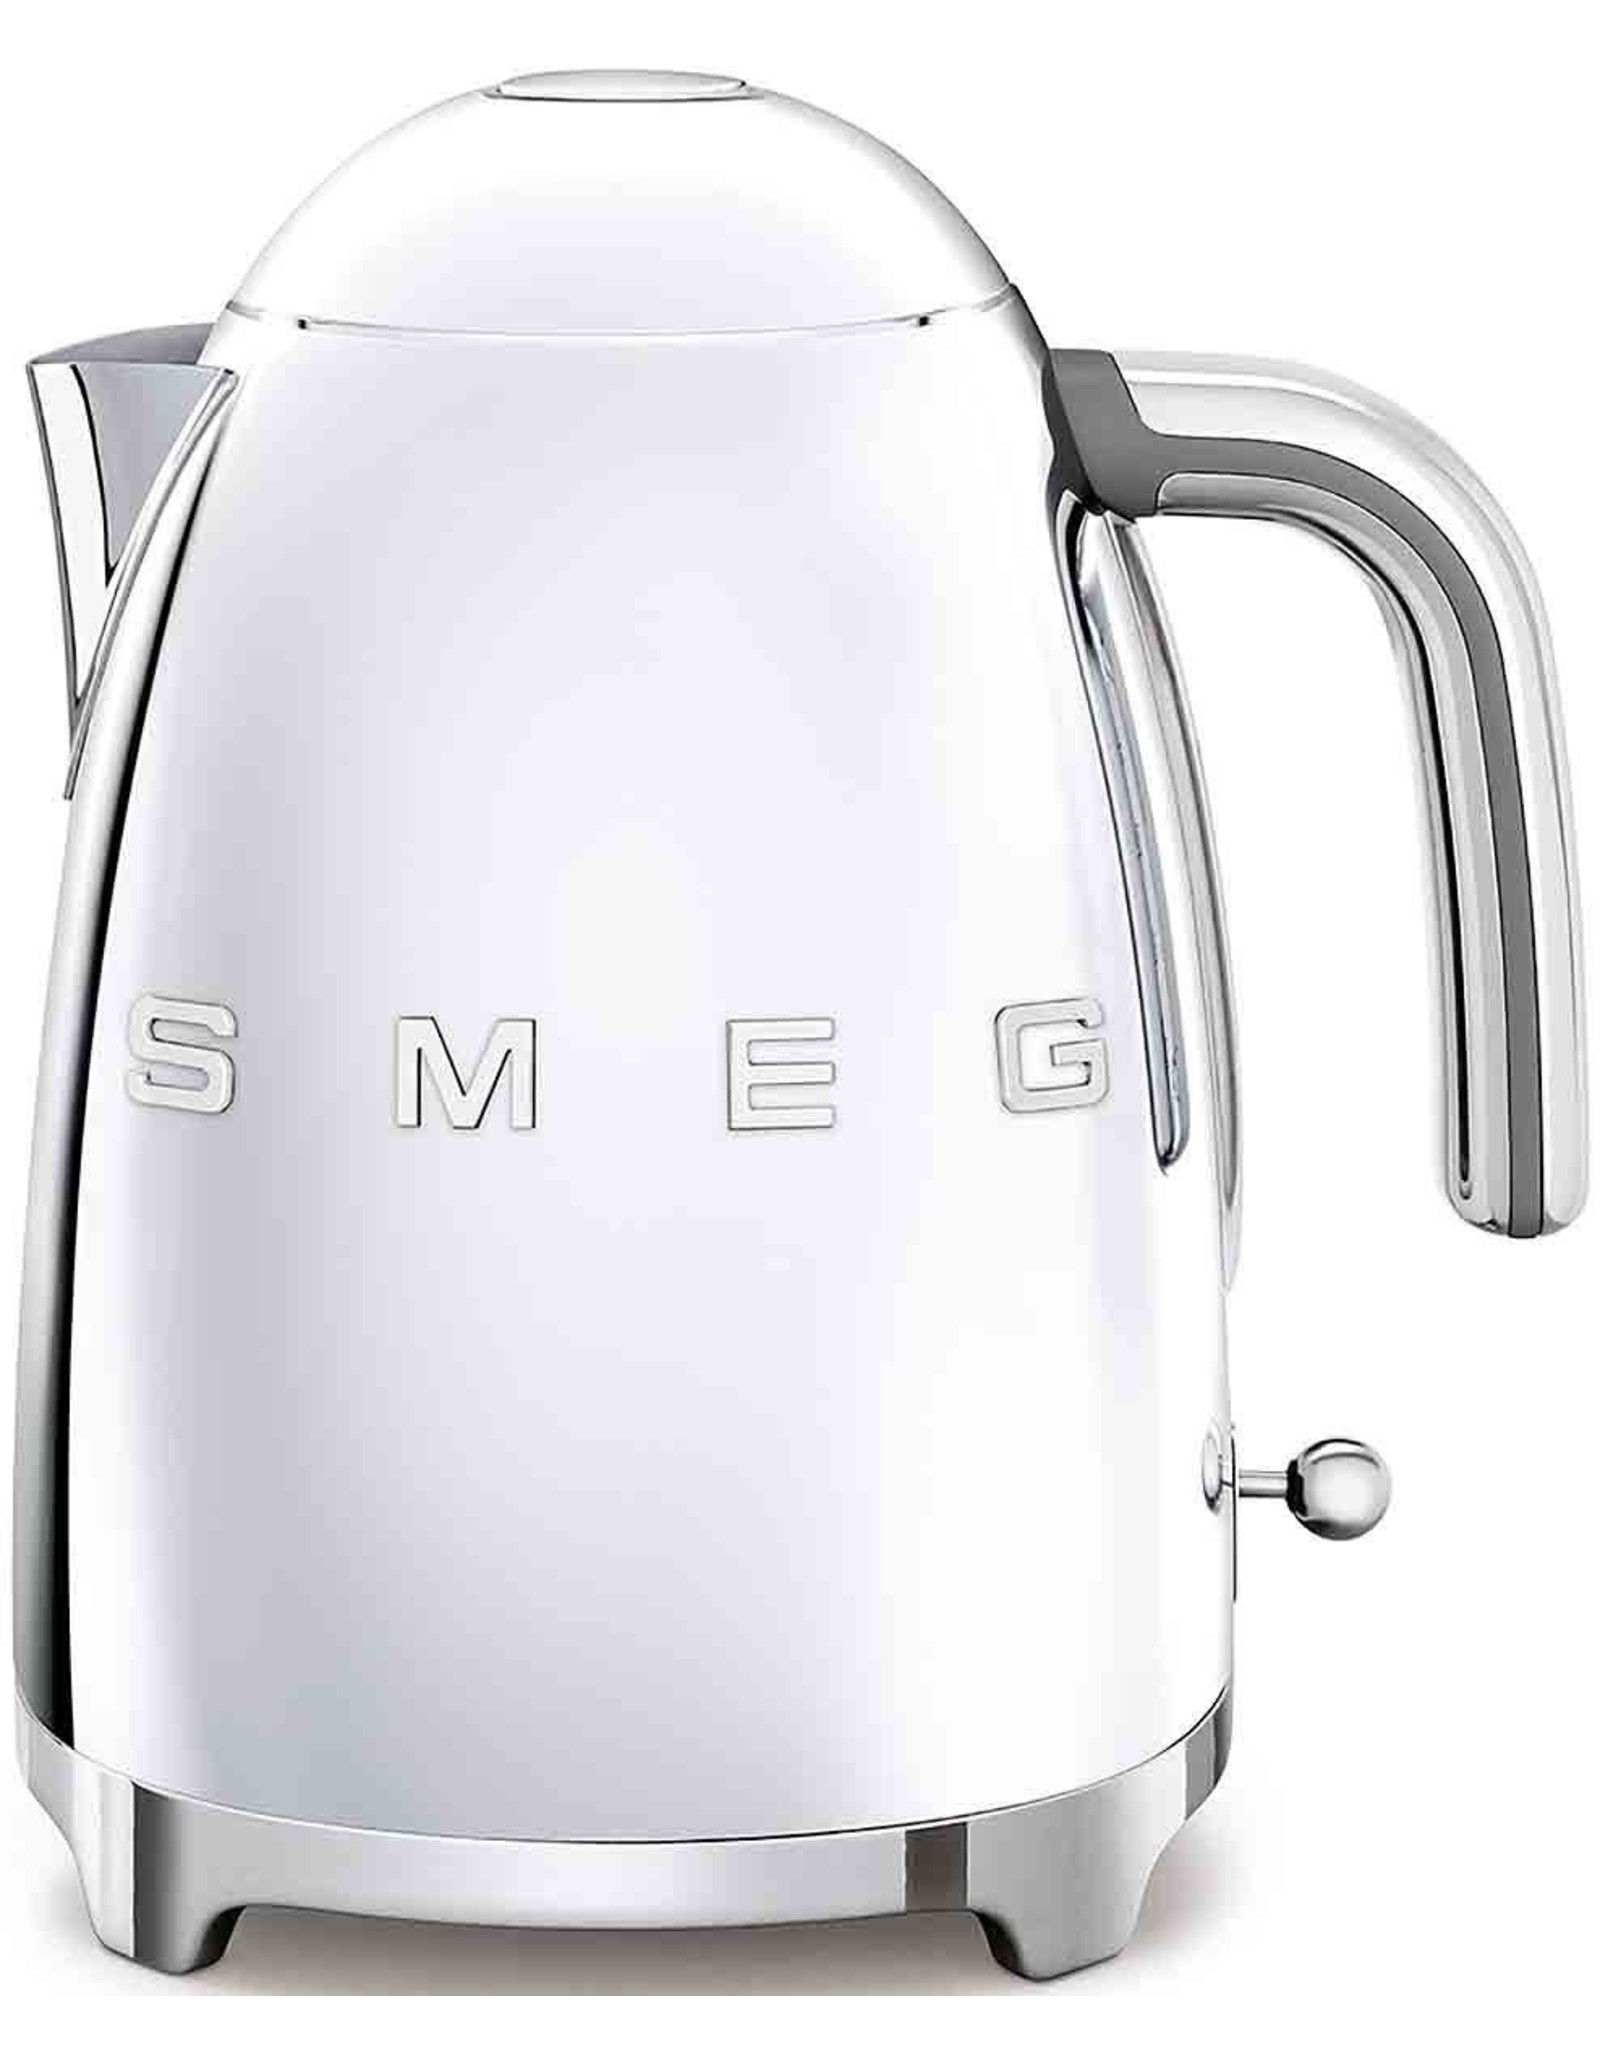 Smeg SMEG Electric Kettle - Stainless Steel